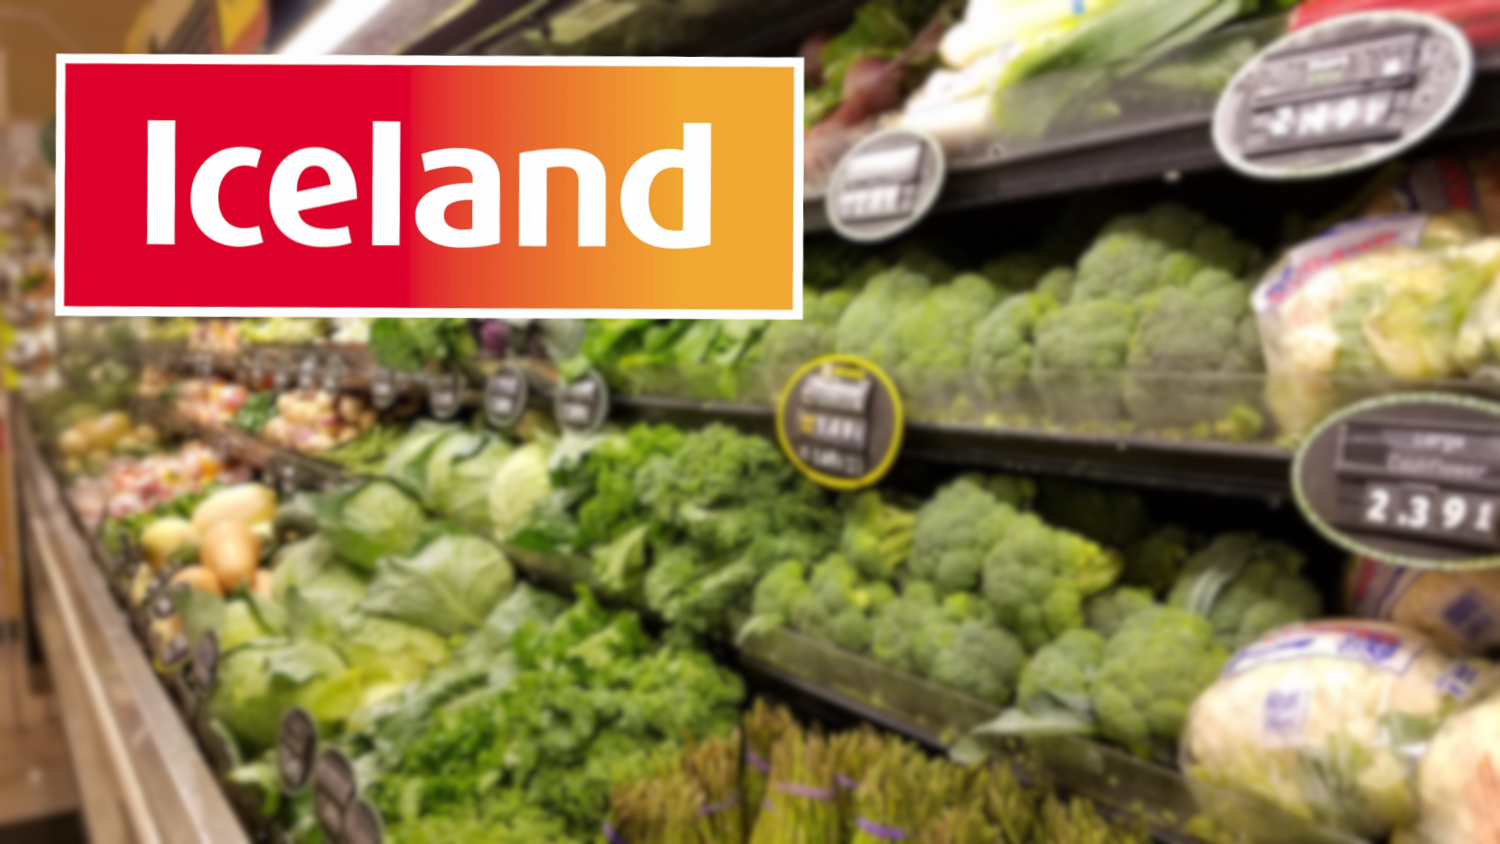 Iceland will be world's first plastic-free supermarket by 2023 - UK supermarket chain Iceland will trial plastic-free produce. The retailer aims to eliminate plastic completely from its own-brand products by 2023